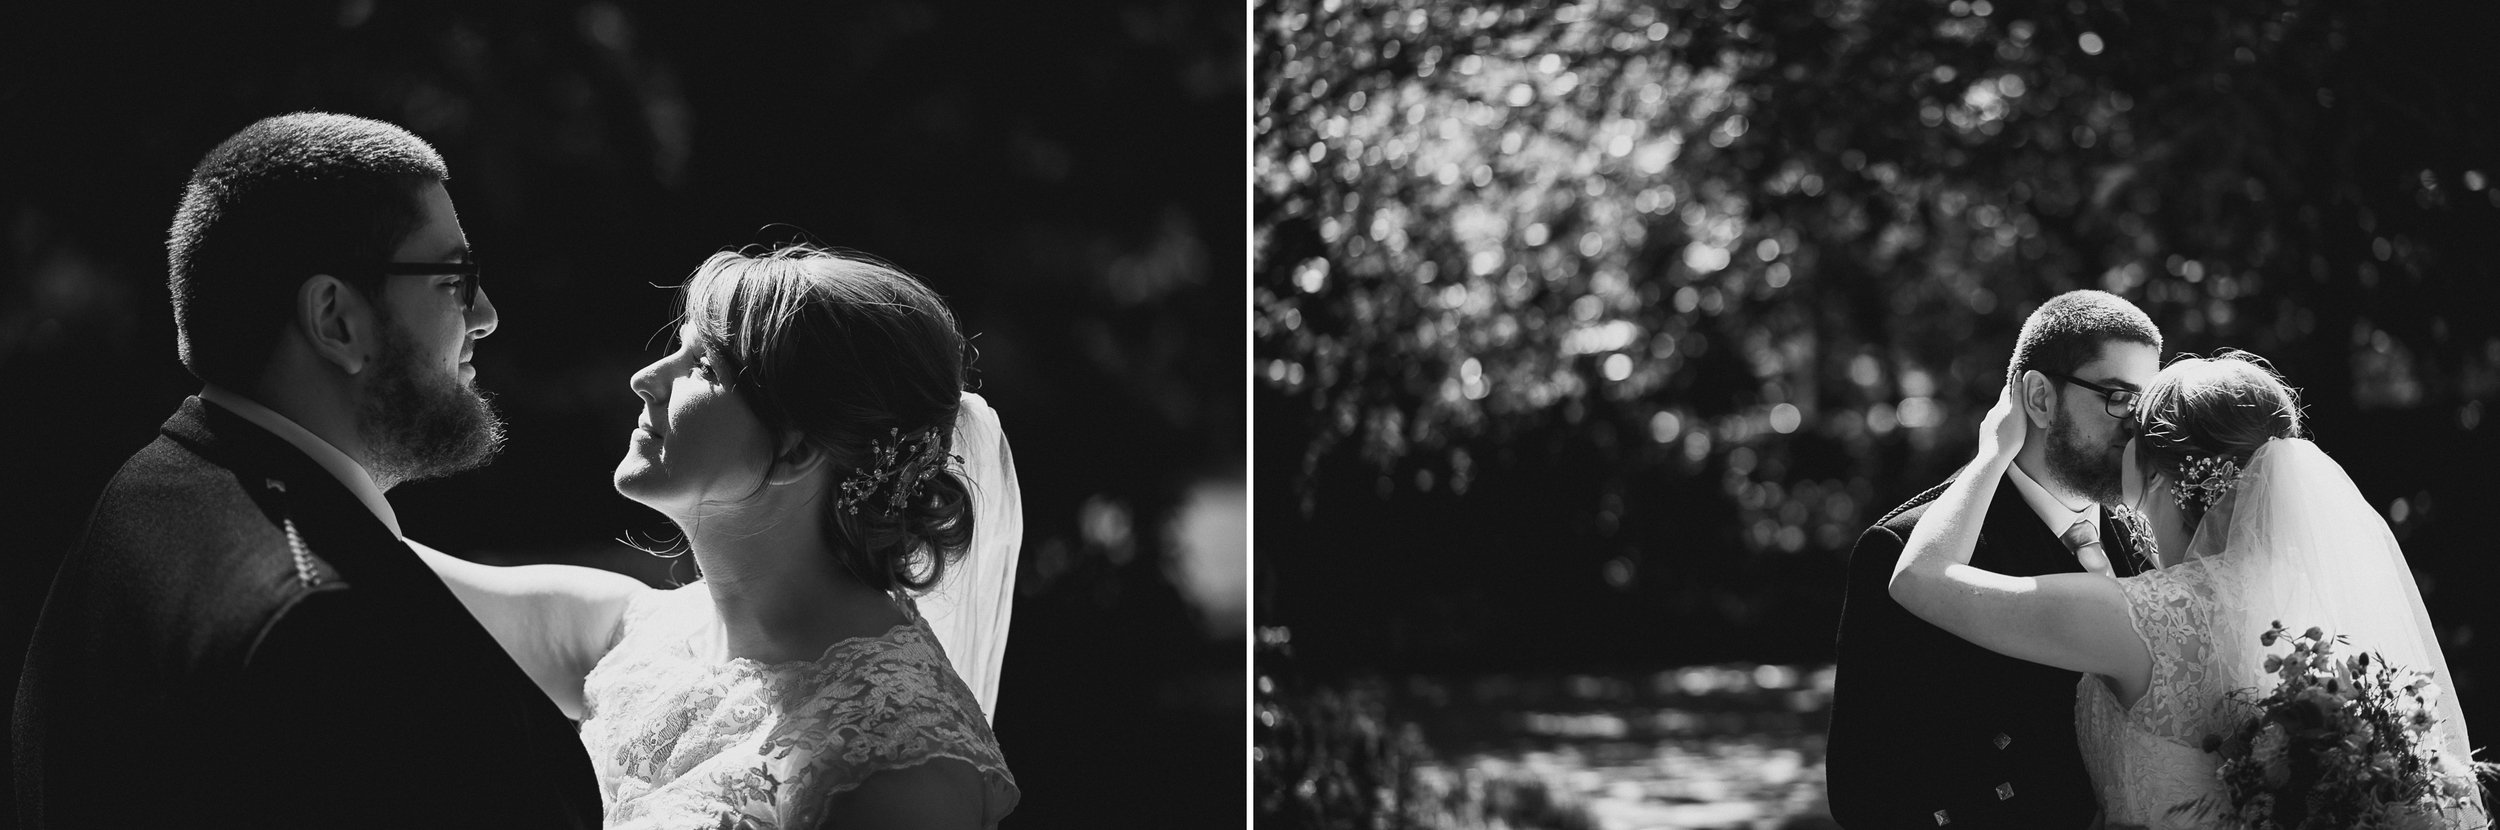 wedding portraits in central cardiff